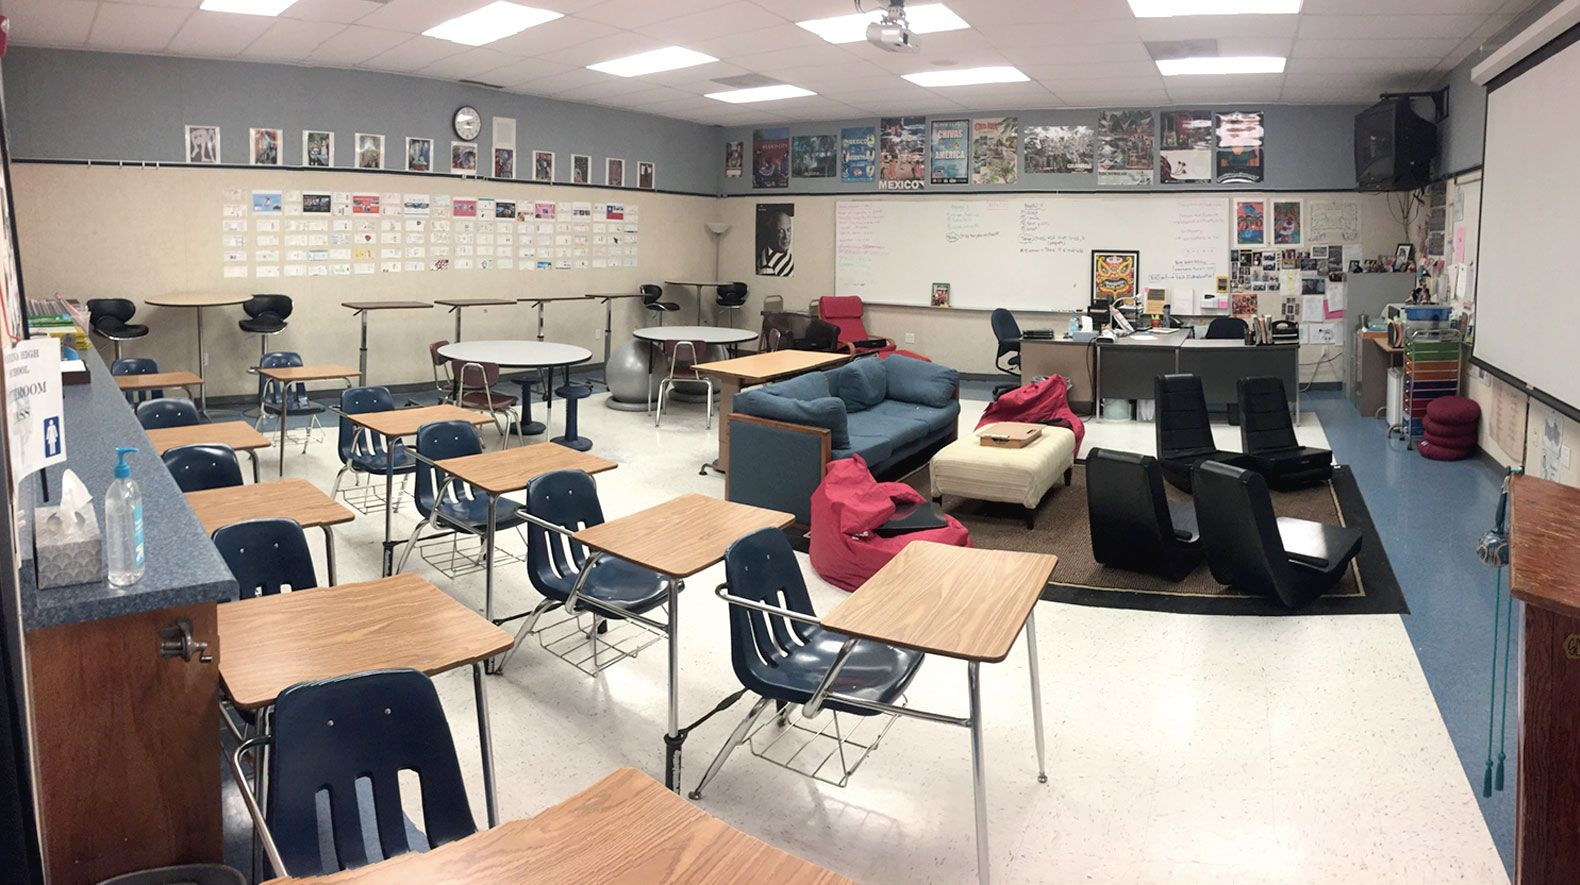 A view of Murray's full classroom, which represents a first-year transition from traditional to flexible seating.